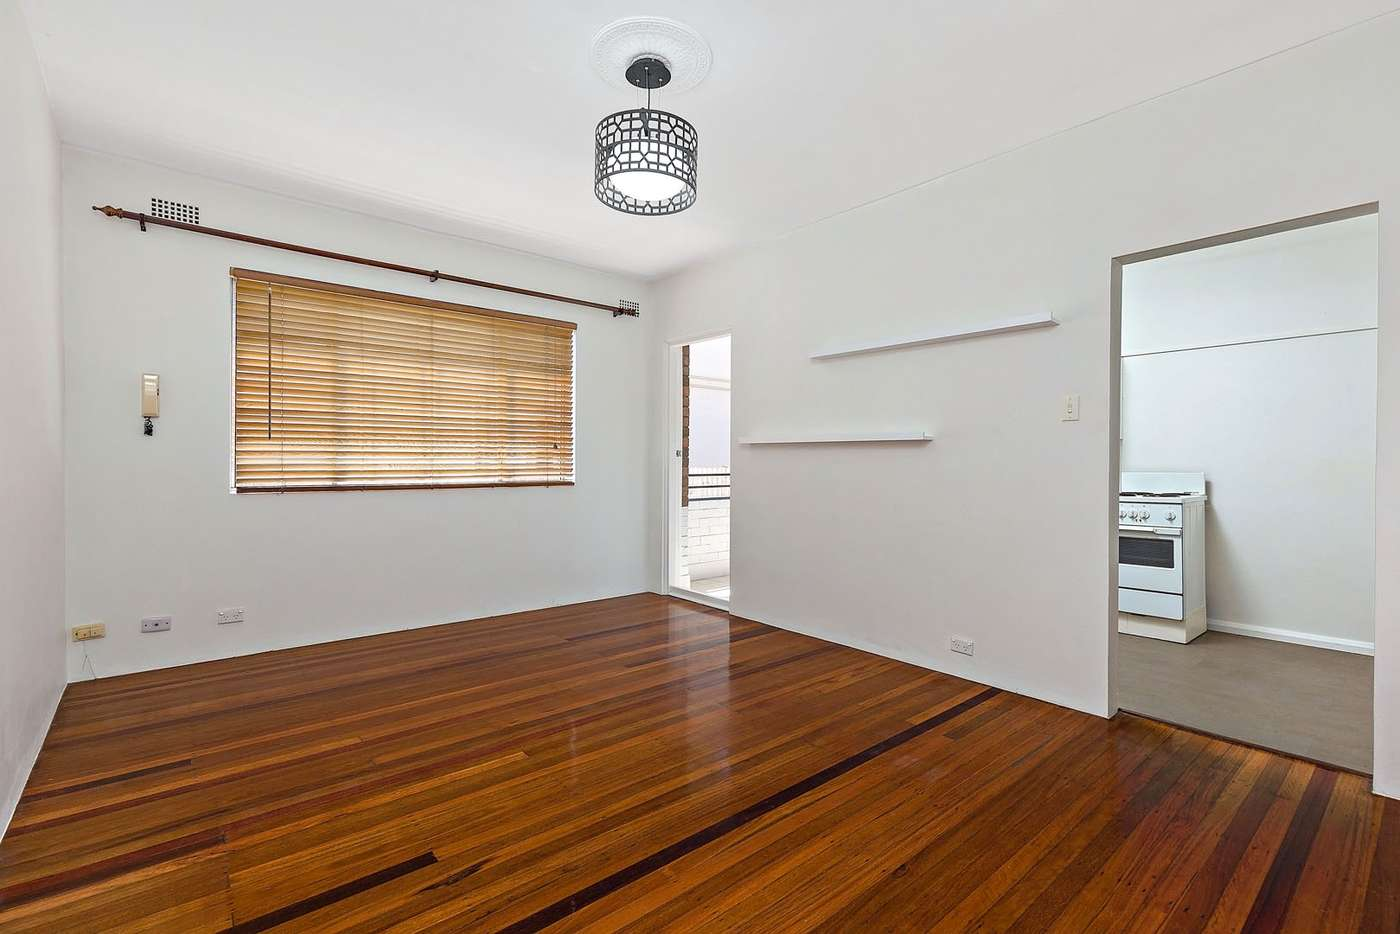 Main view of Homely apartment listing, 5/92 ALT STREET, Ashfield NSW 2131